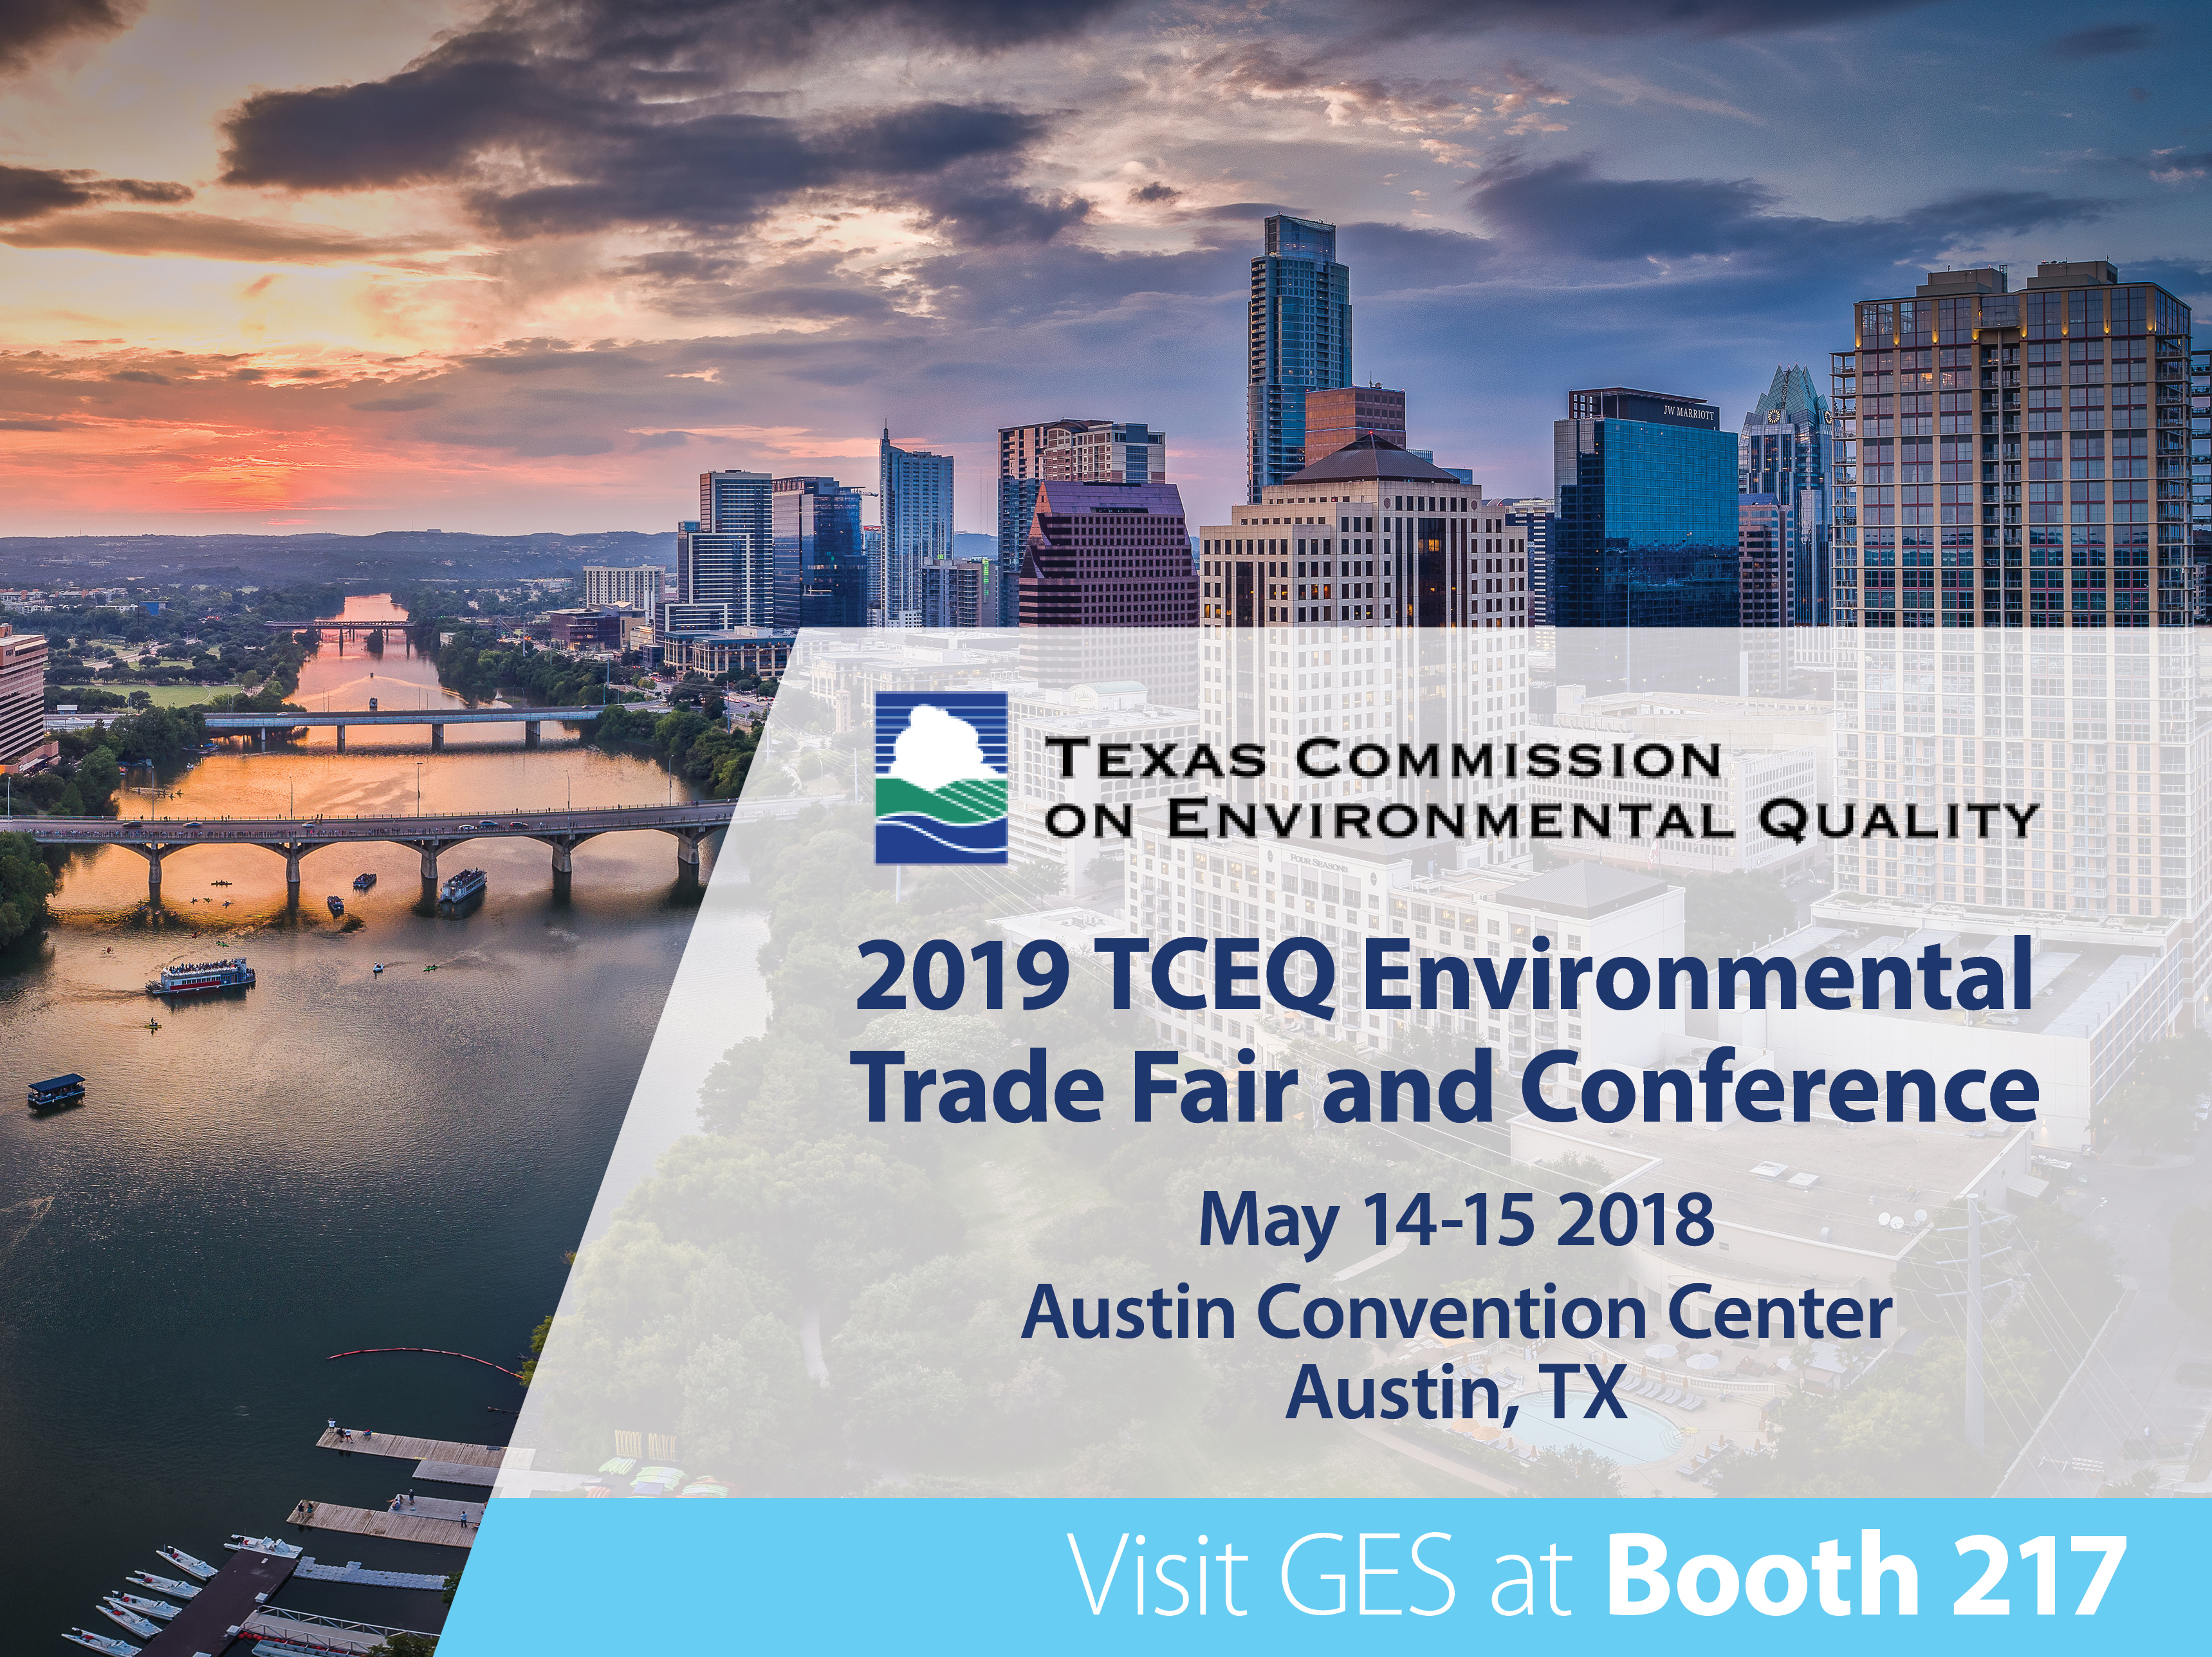 TCEQ 2019 Conference - GES Booth 217